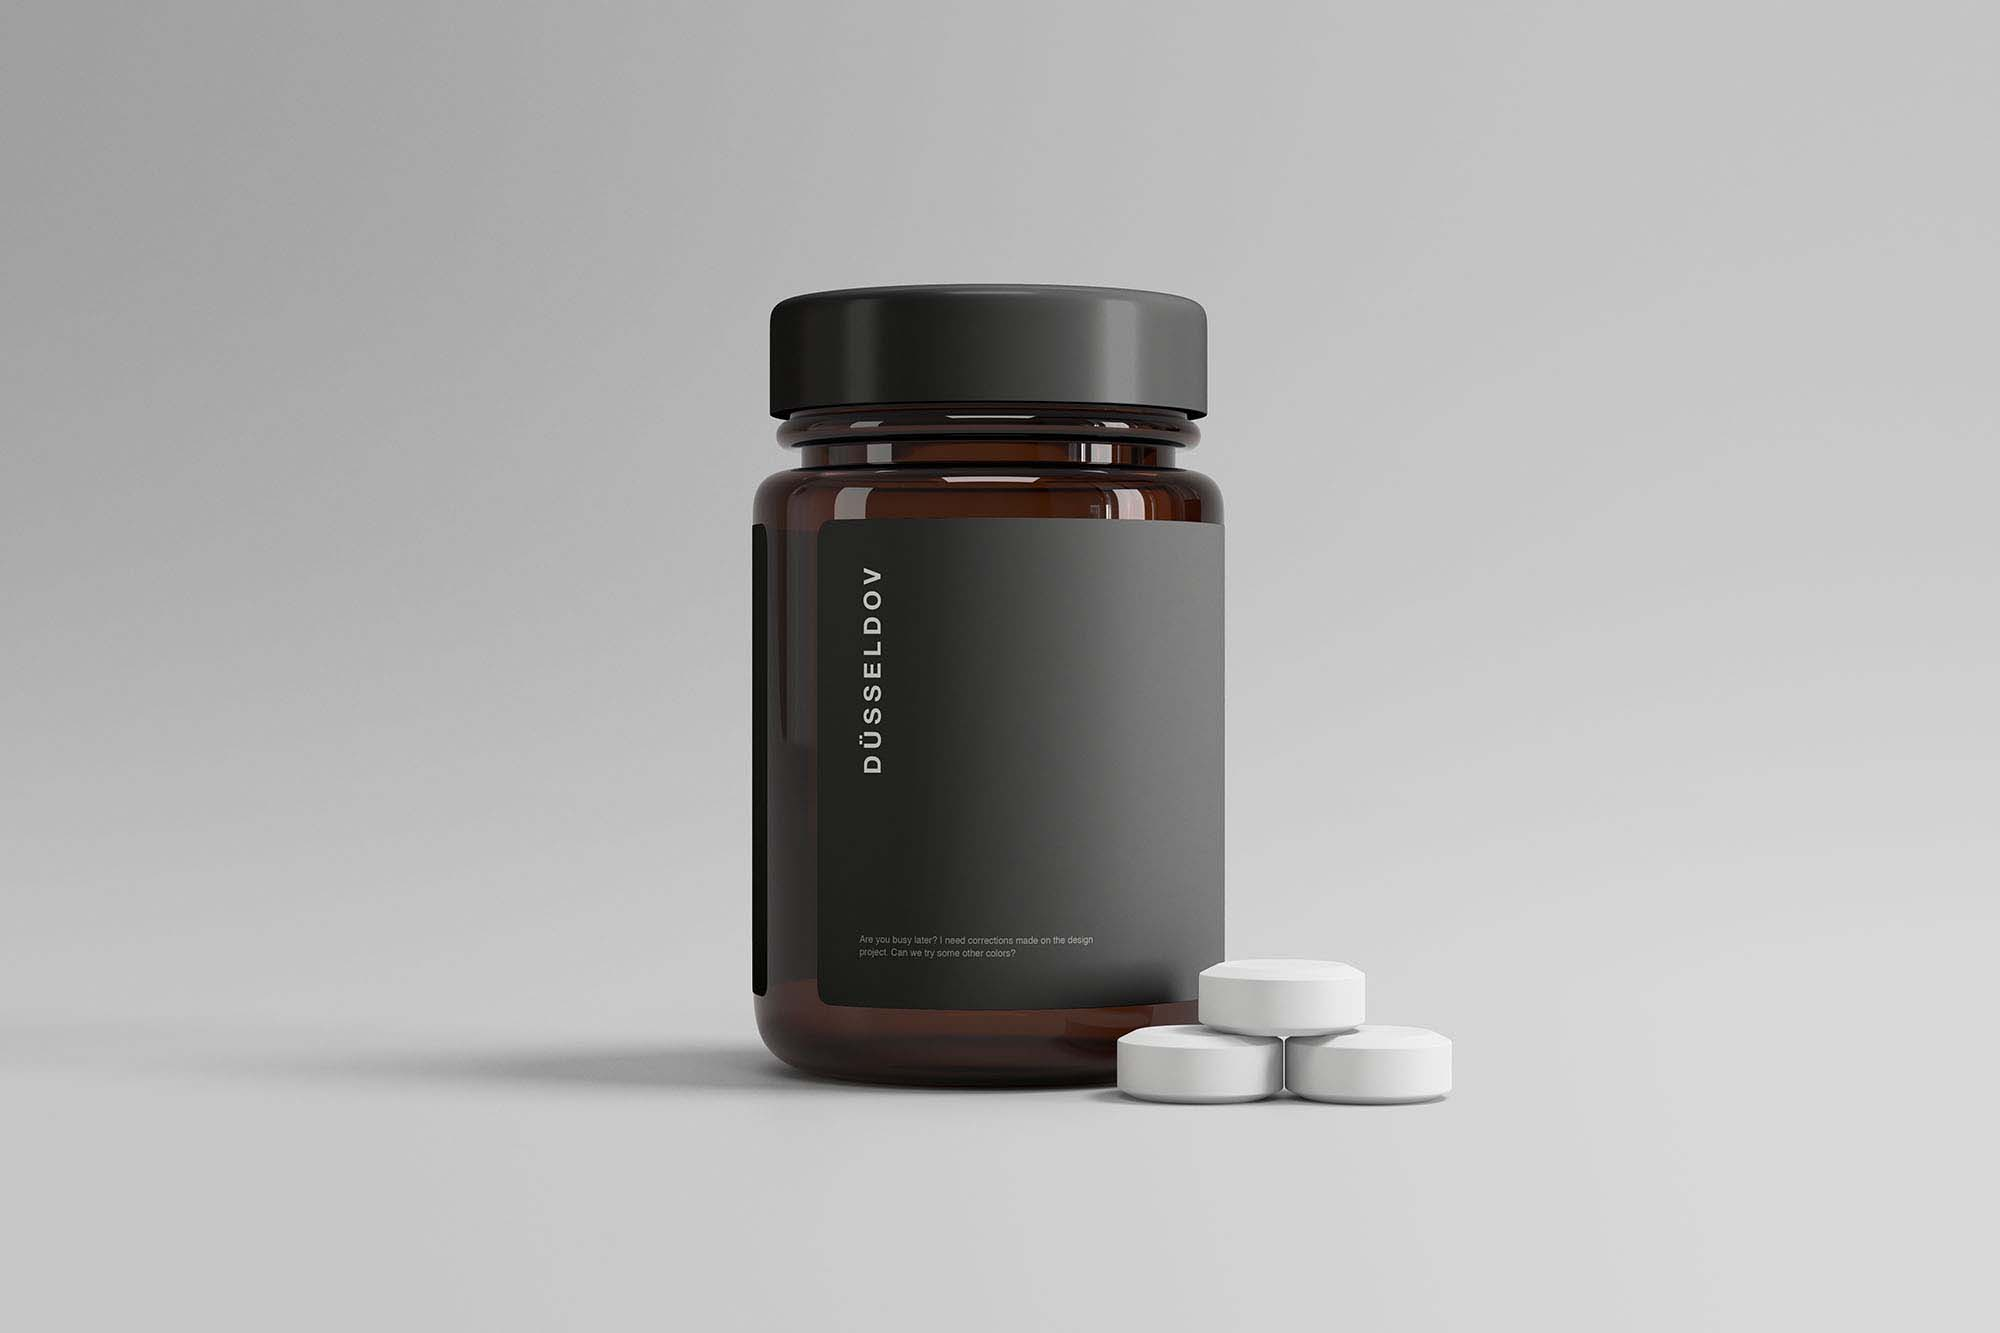 Medicine Bottle with Pills Mockup 2